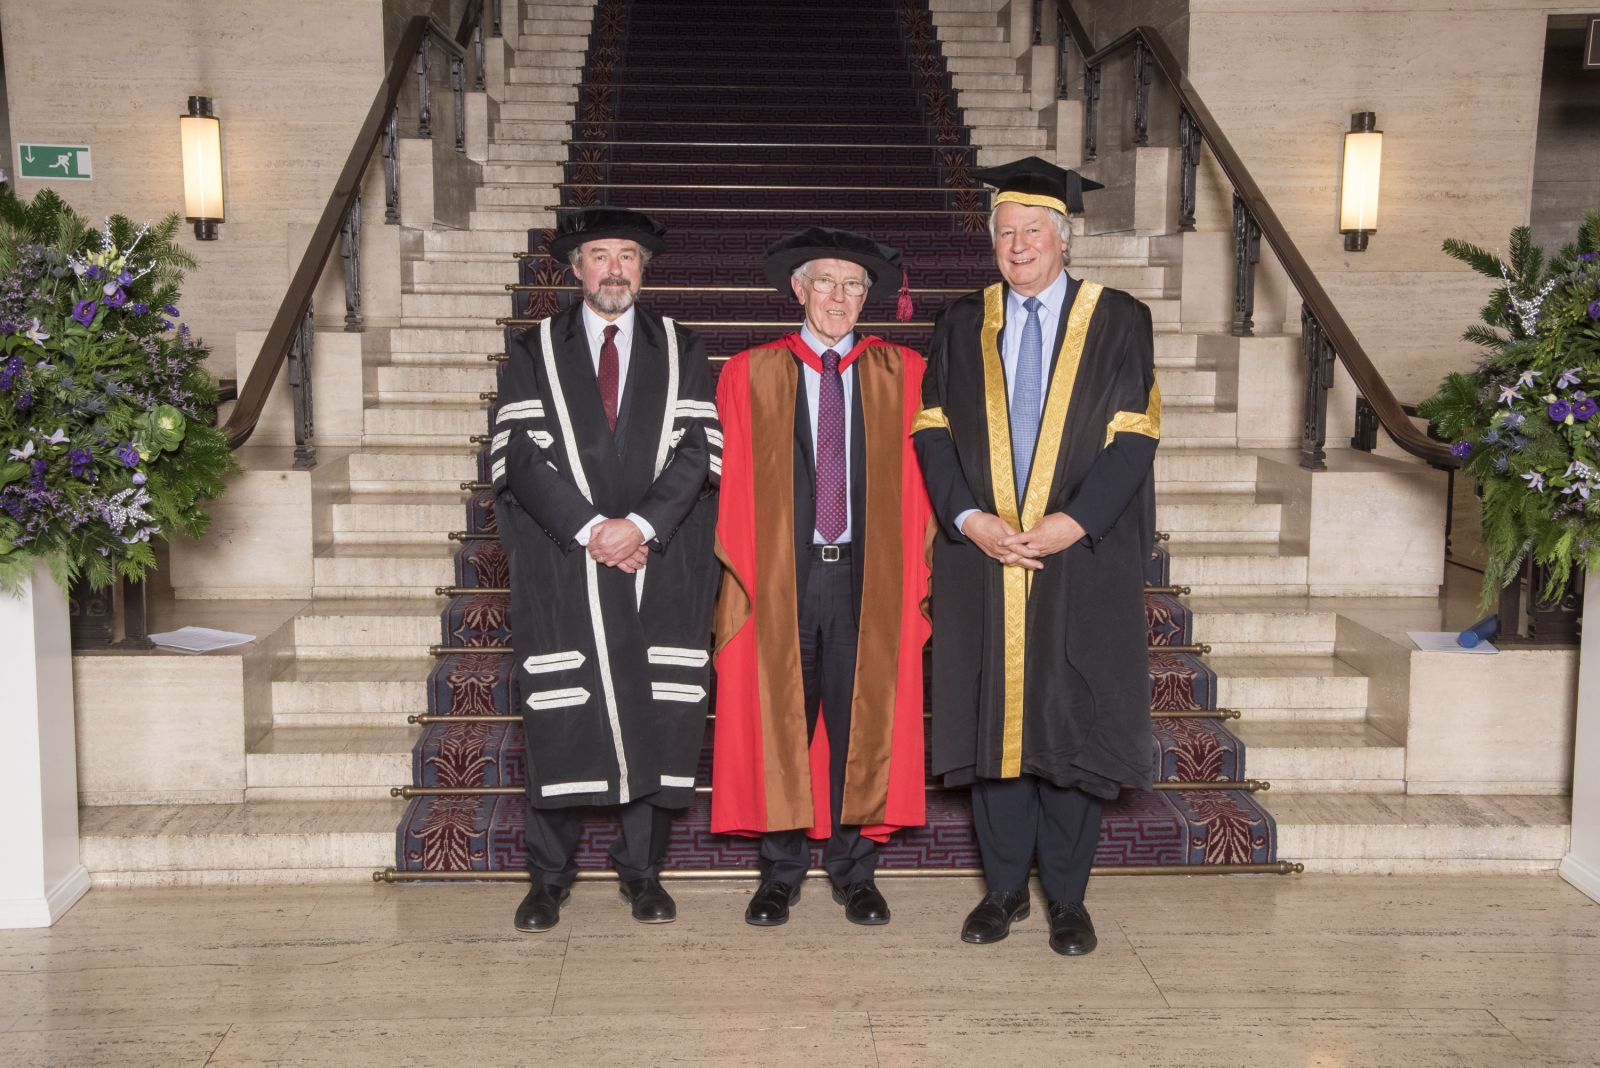 Sir Alan Wilson with Dean of the School of Advanced Study Rick Rylance (left) and Vice Chancellor of the University of London, Adrian Smith